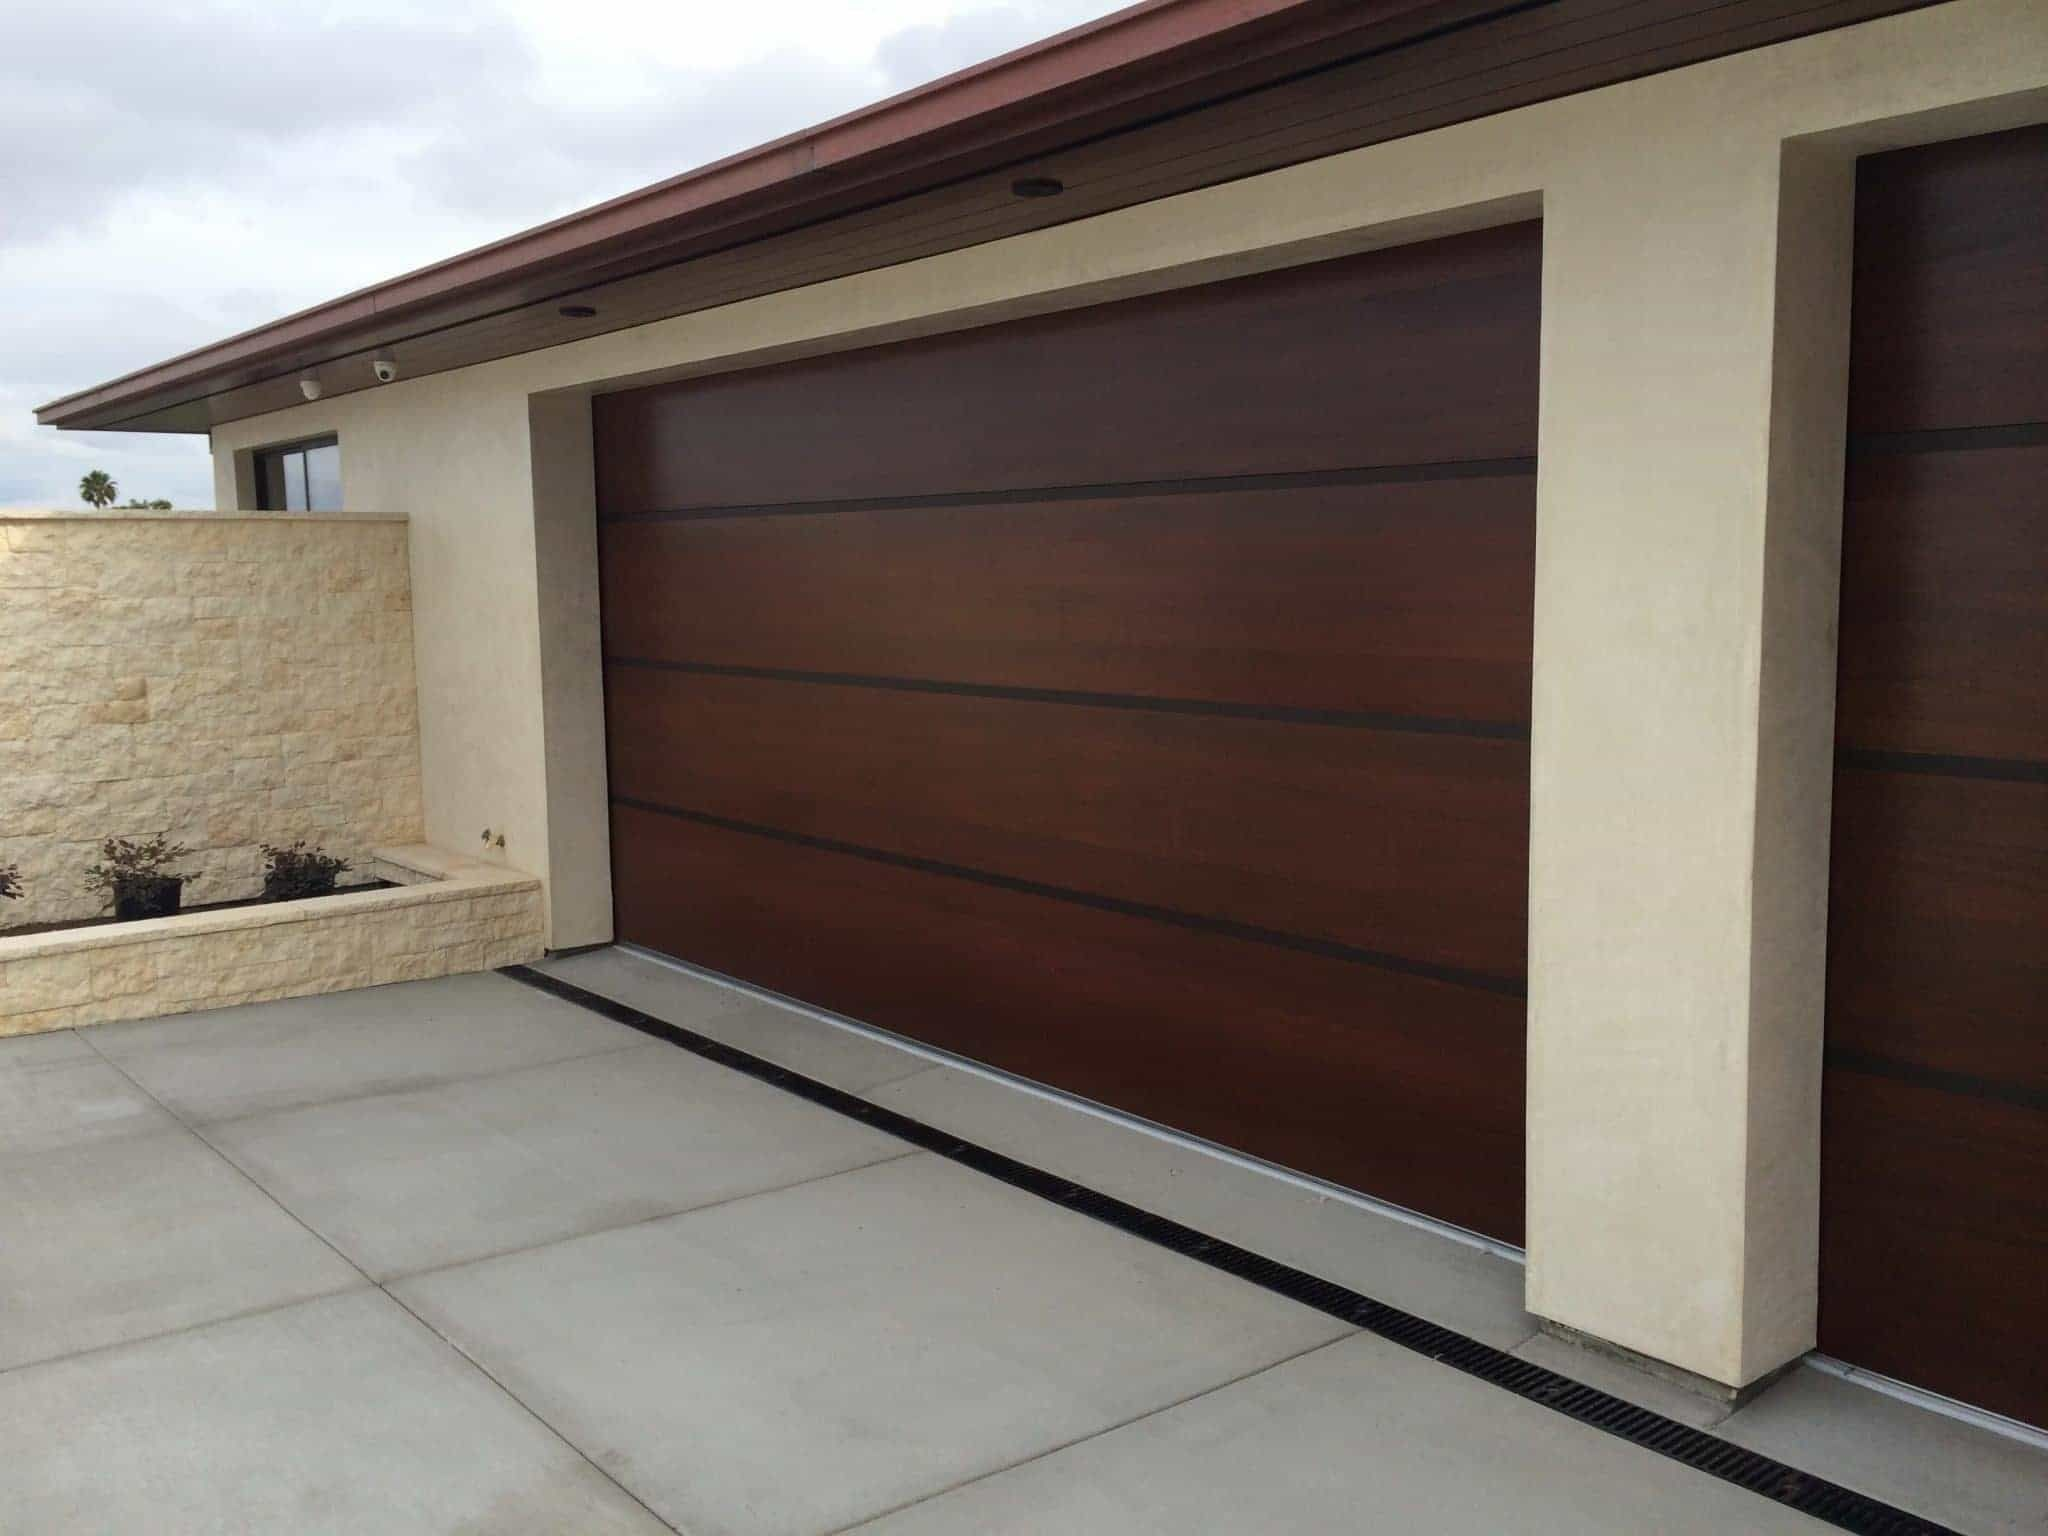 Garage Door Services In California Tungsten Royce Garage Door Design Modern Garage Doors Garage Doors